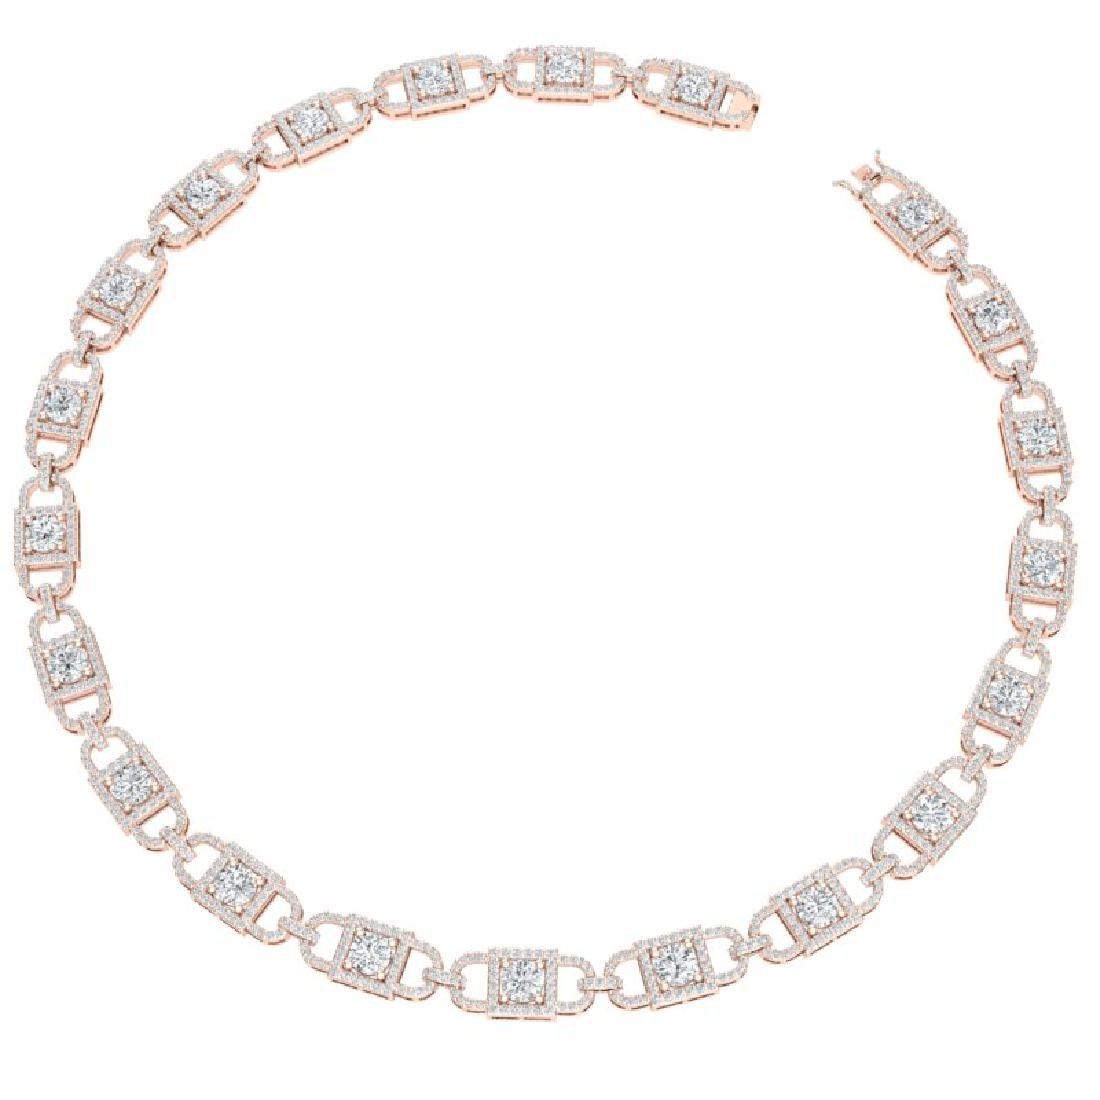 20 CTW Certified SI/I Diamond Halo Necklace 18K Rose - 3